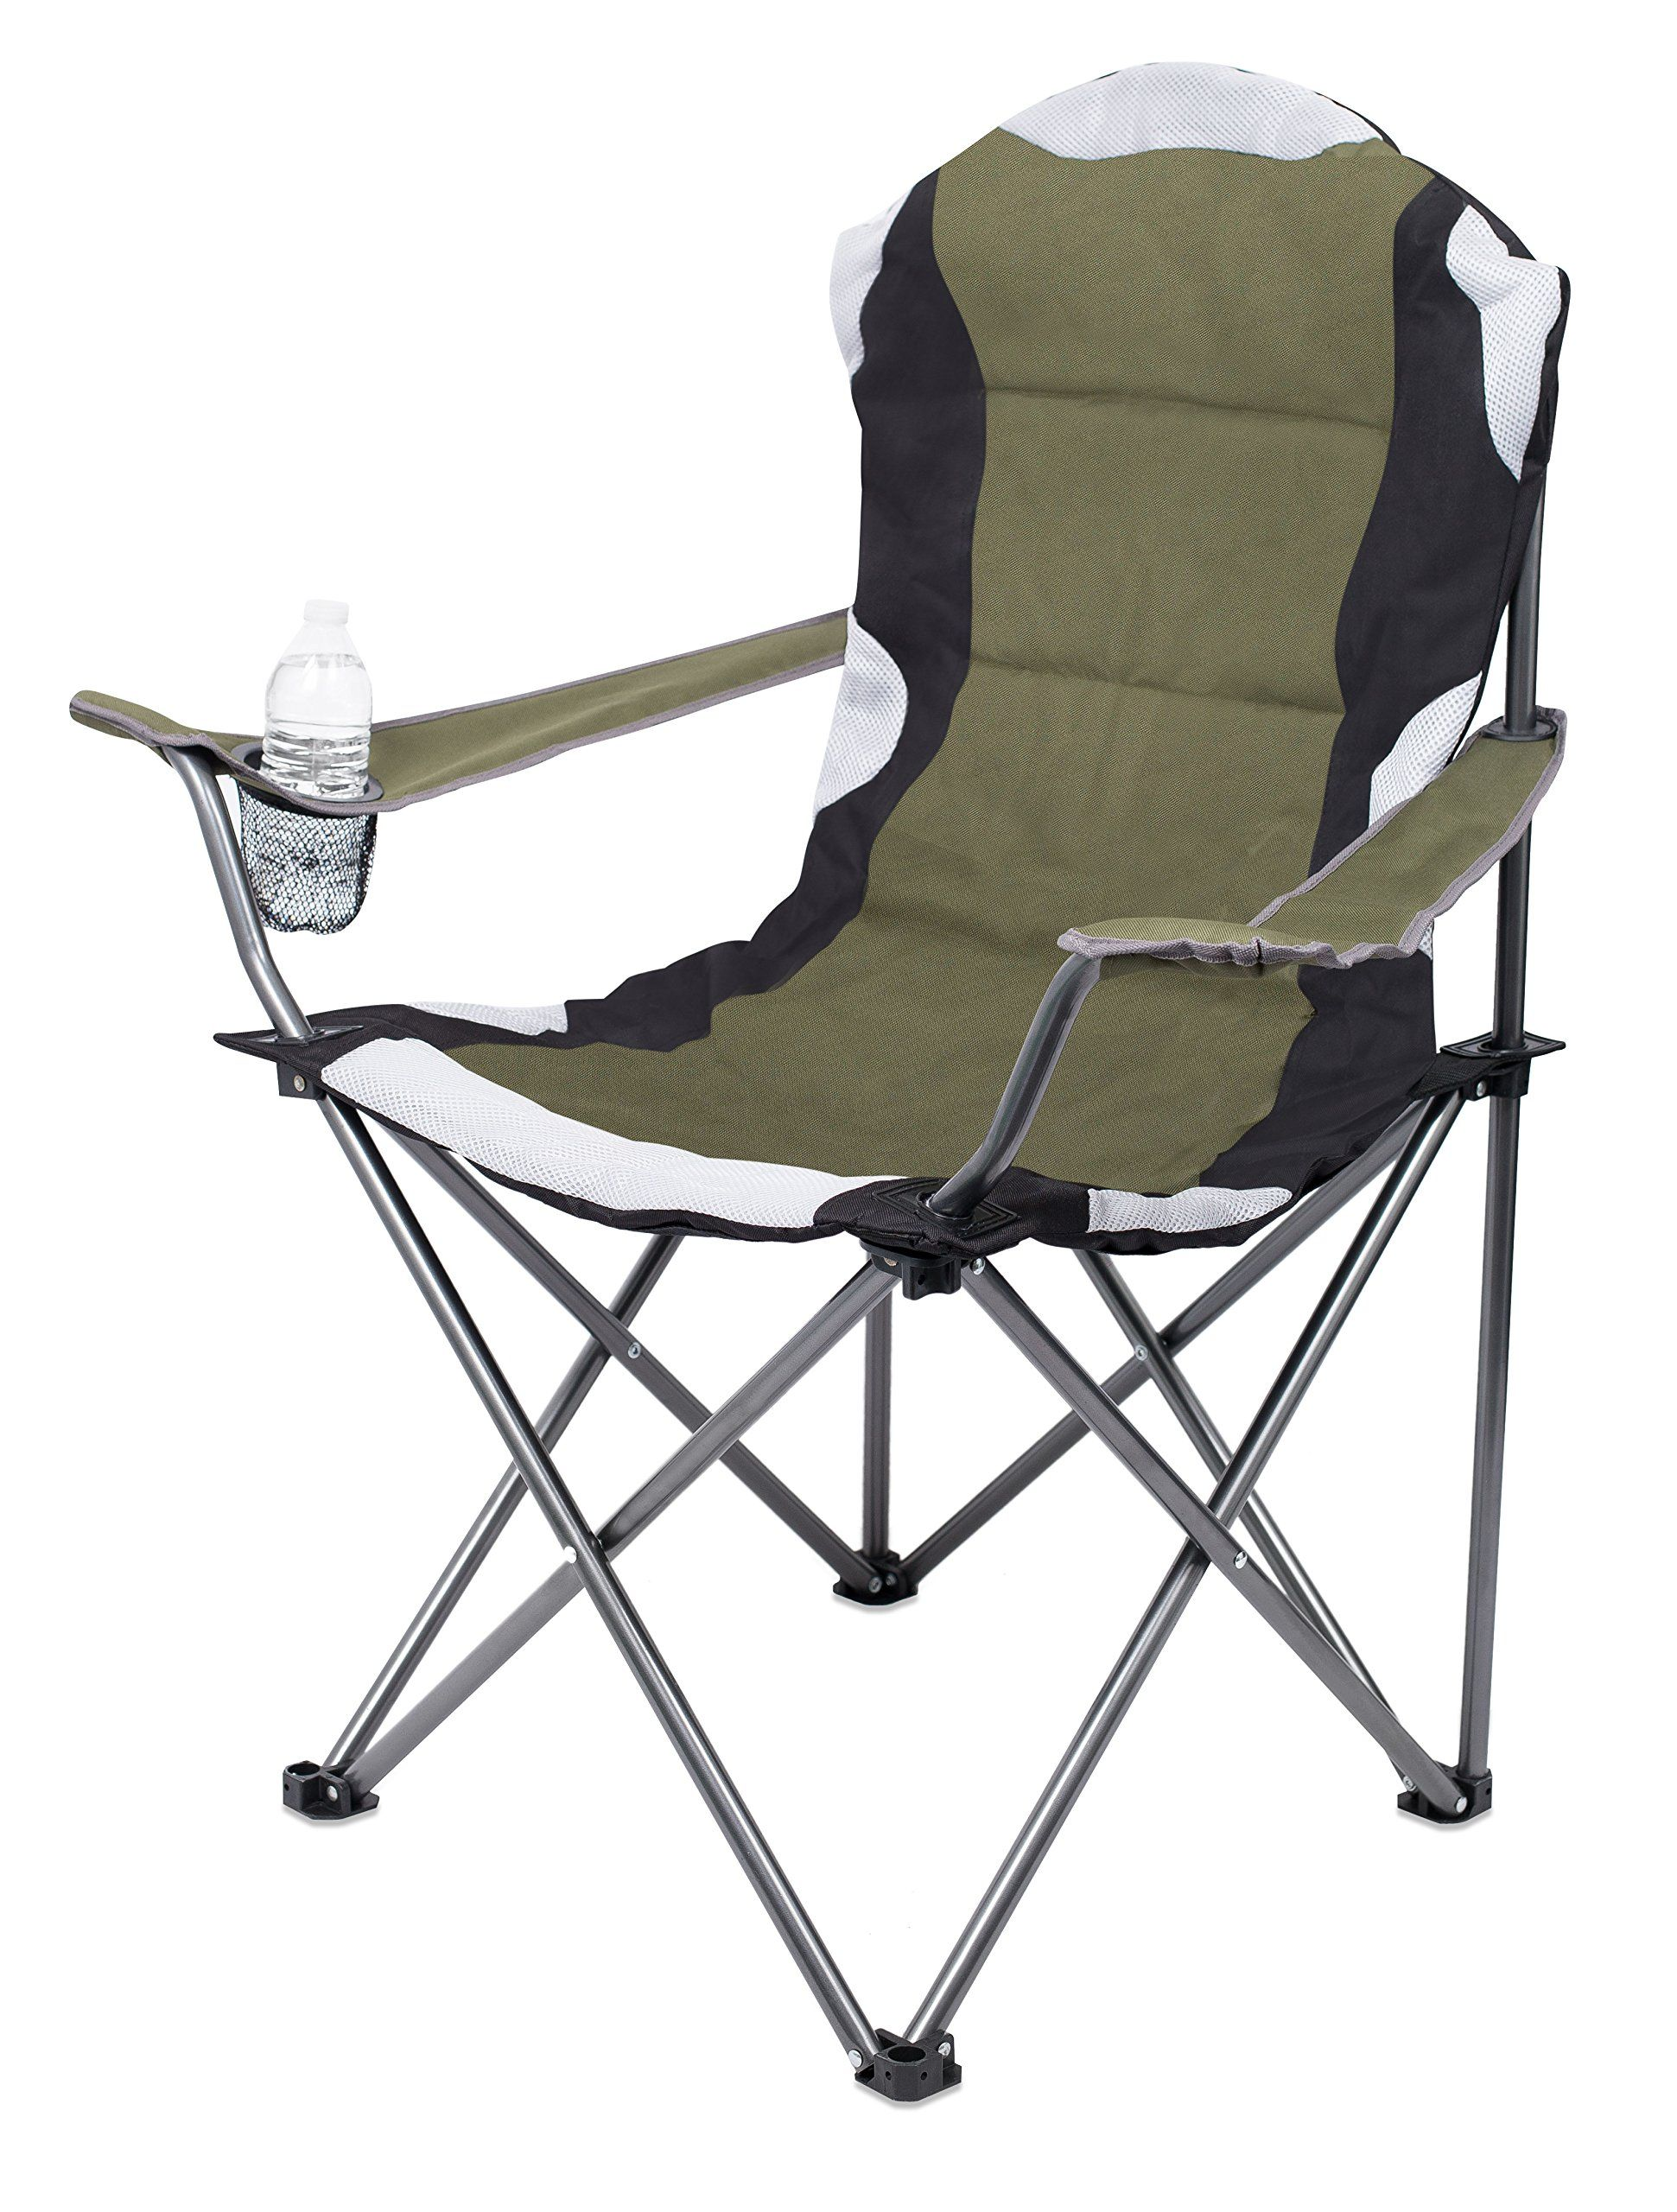 Internet S Best Padded Camping Folding Chair Outdoor Sports Cup Holder Comfortable Carry Bag B Outdoor Folding Chairs Outdoor Chairs Camping Chairs